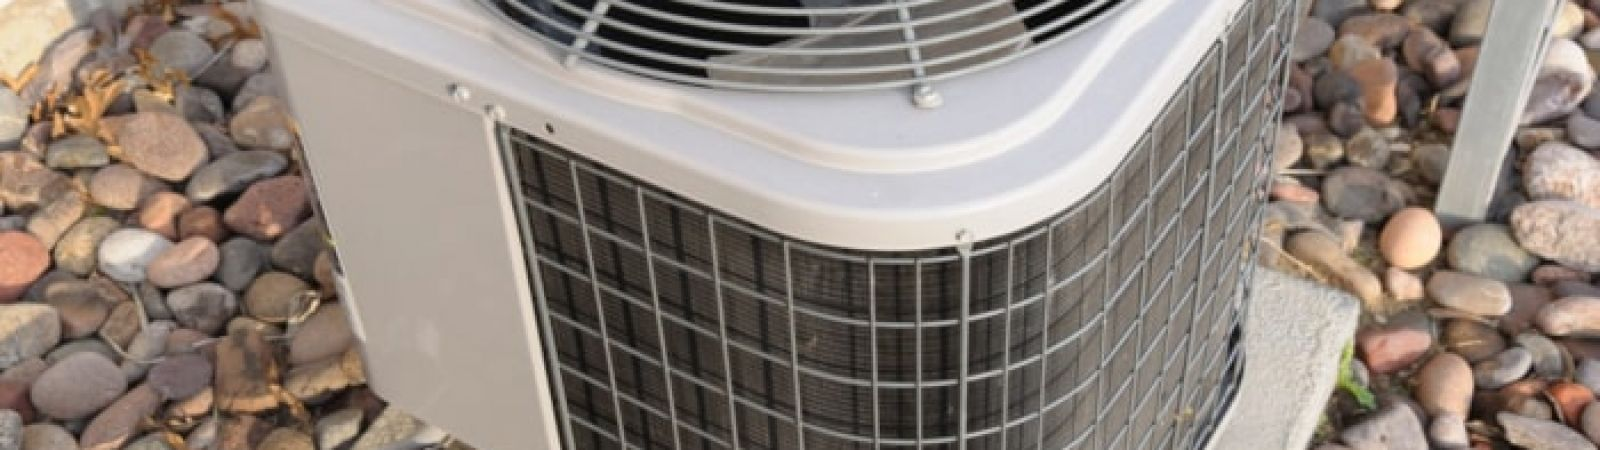 Should You Repair or Replace an Old HVAC System?